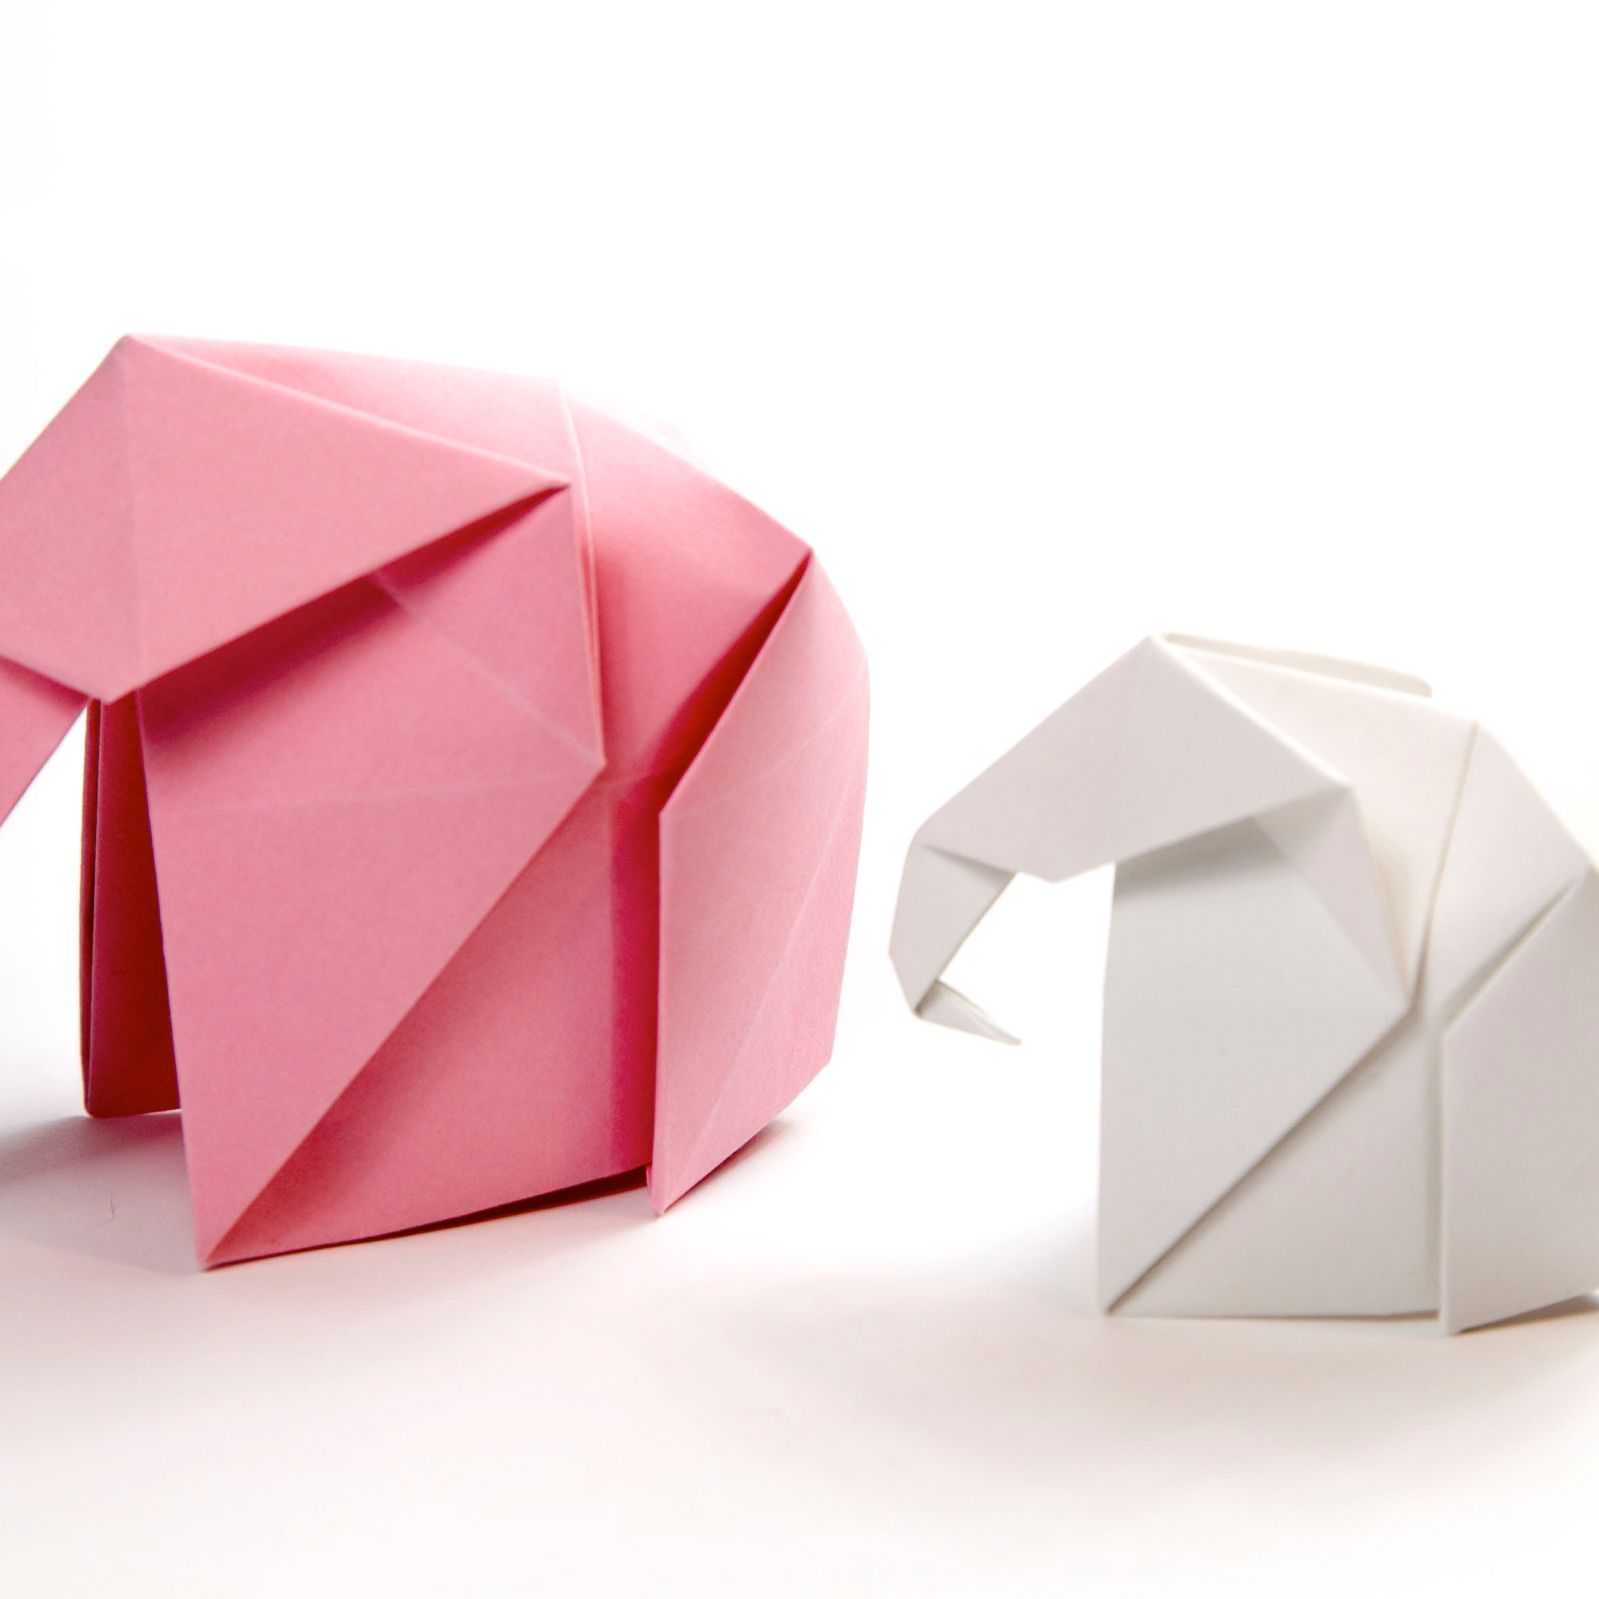 How To Make An Origami Elephant Download icons in all formats or edit them for your designs. how to make an origami elephant